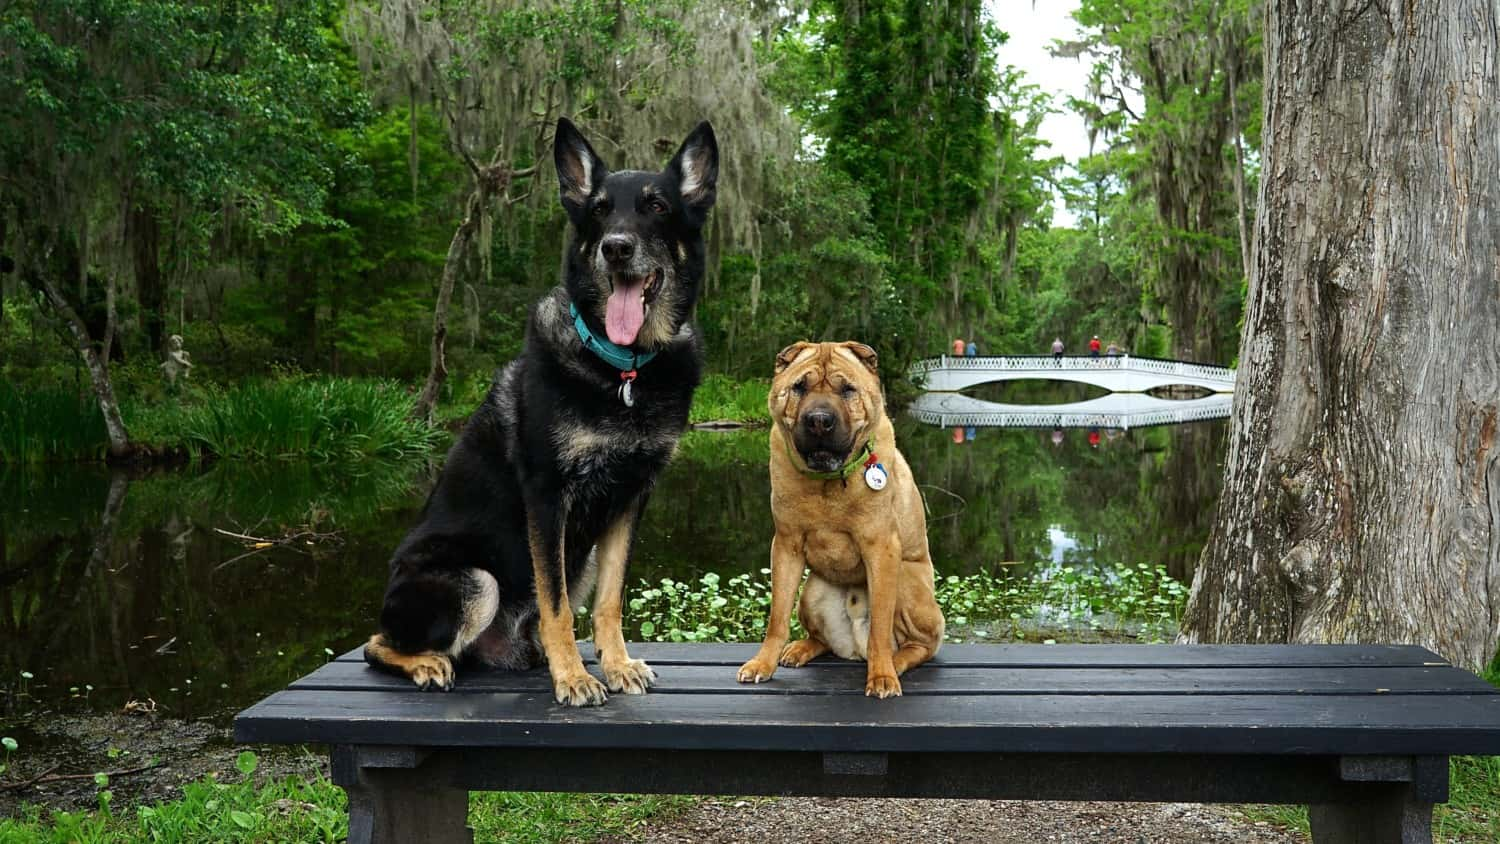 South Carolina's Top Pet Friendly Attraction: Magnolia Plantation & Gardens | GoPetFriendly.com